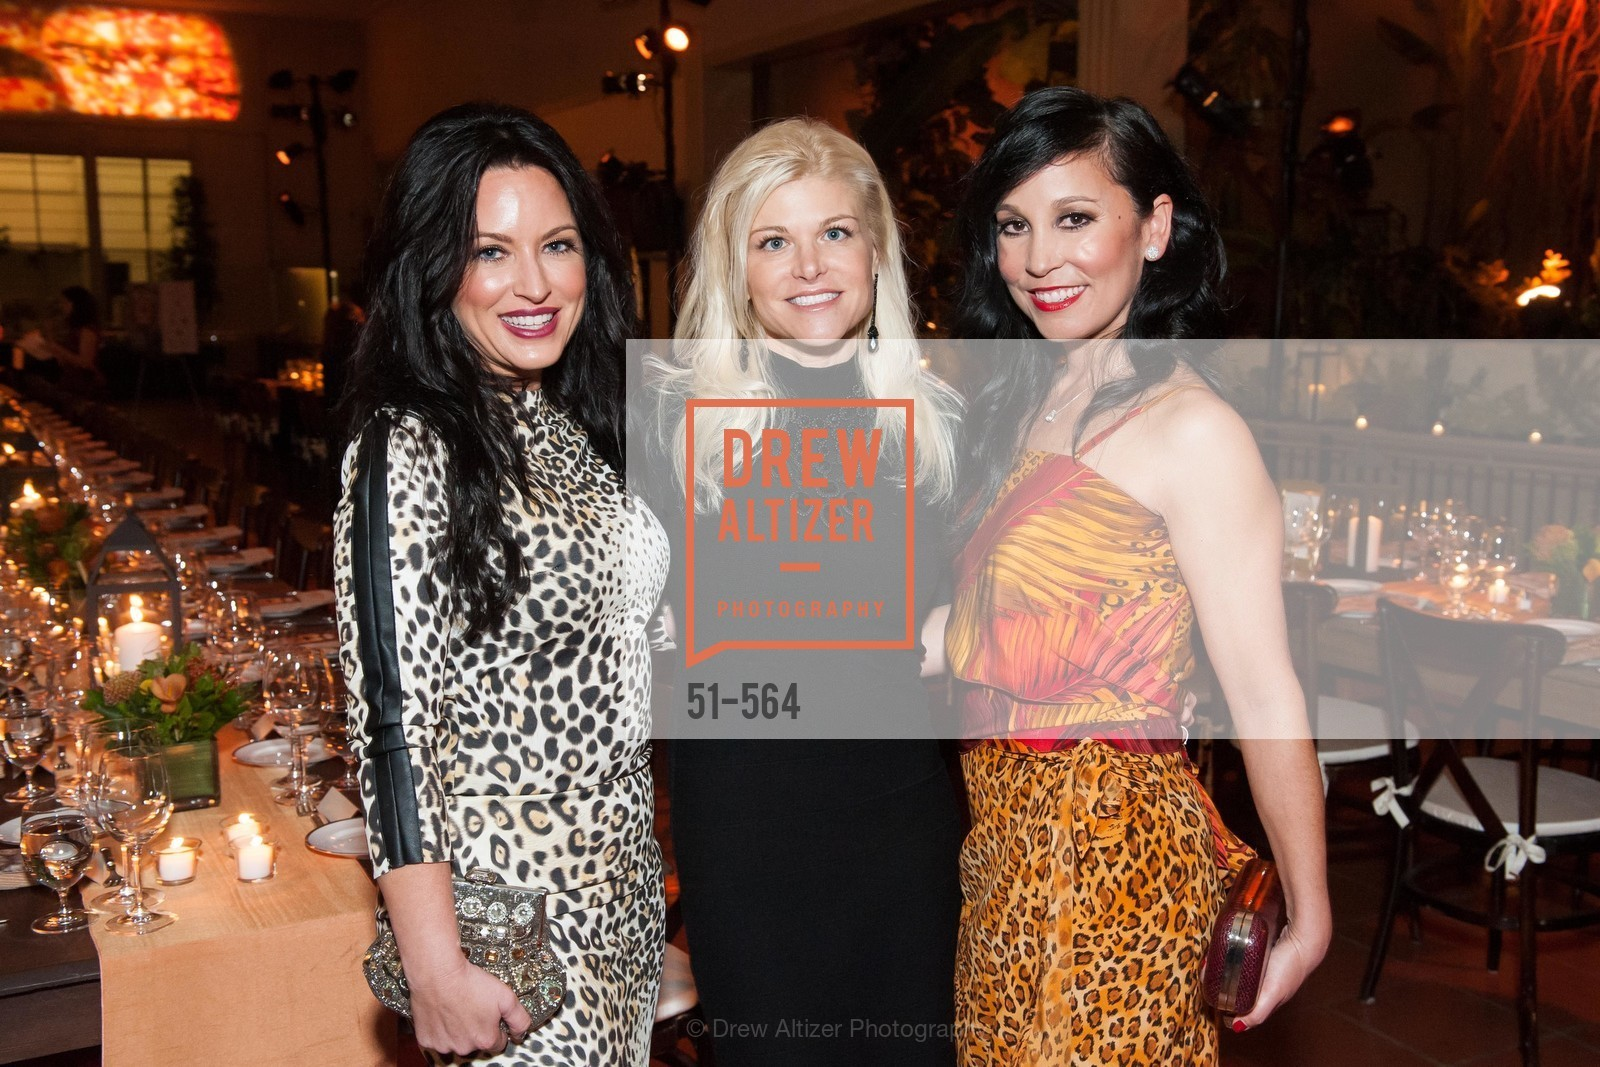 Lori Shigekane, Michelle Molfino, SHREVE & CO. Hosts AMERICAN CANCER SOCIETY BENEFIT, US, September 10th, 2014,Drew Altizer, Drew Altizer Photography, full-service event agency, private events, San Francisco photographer, photographer California